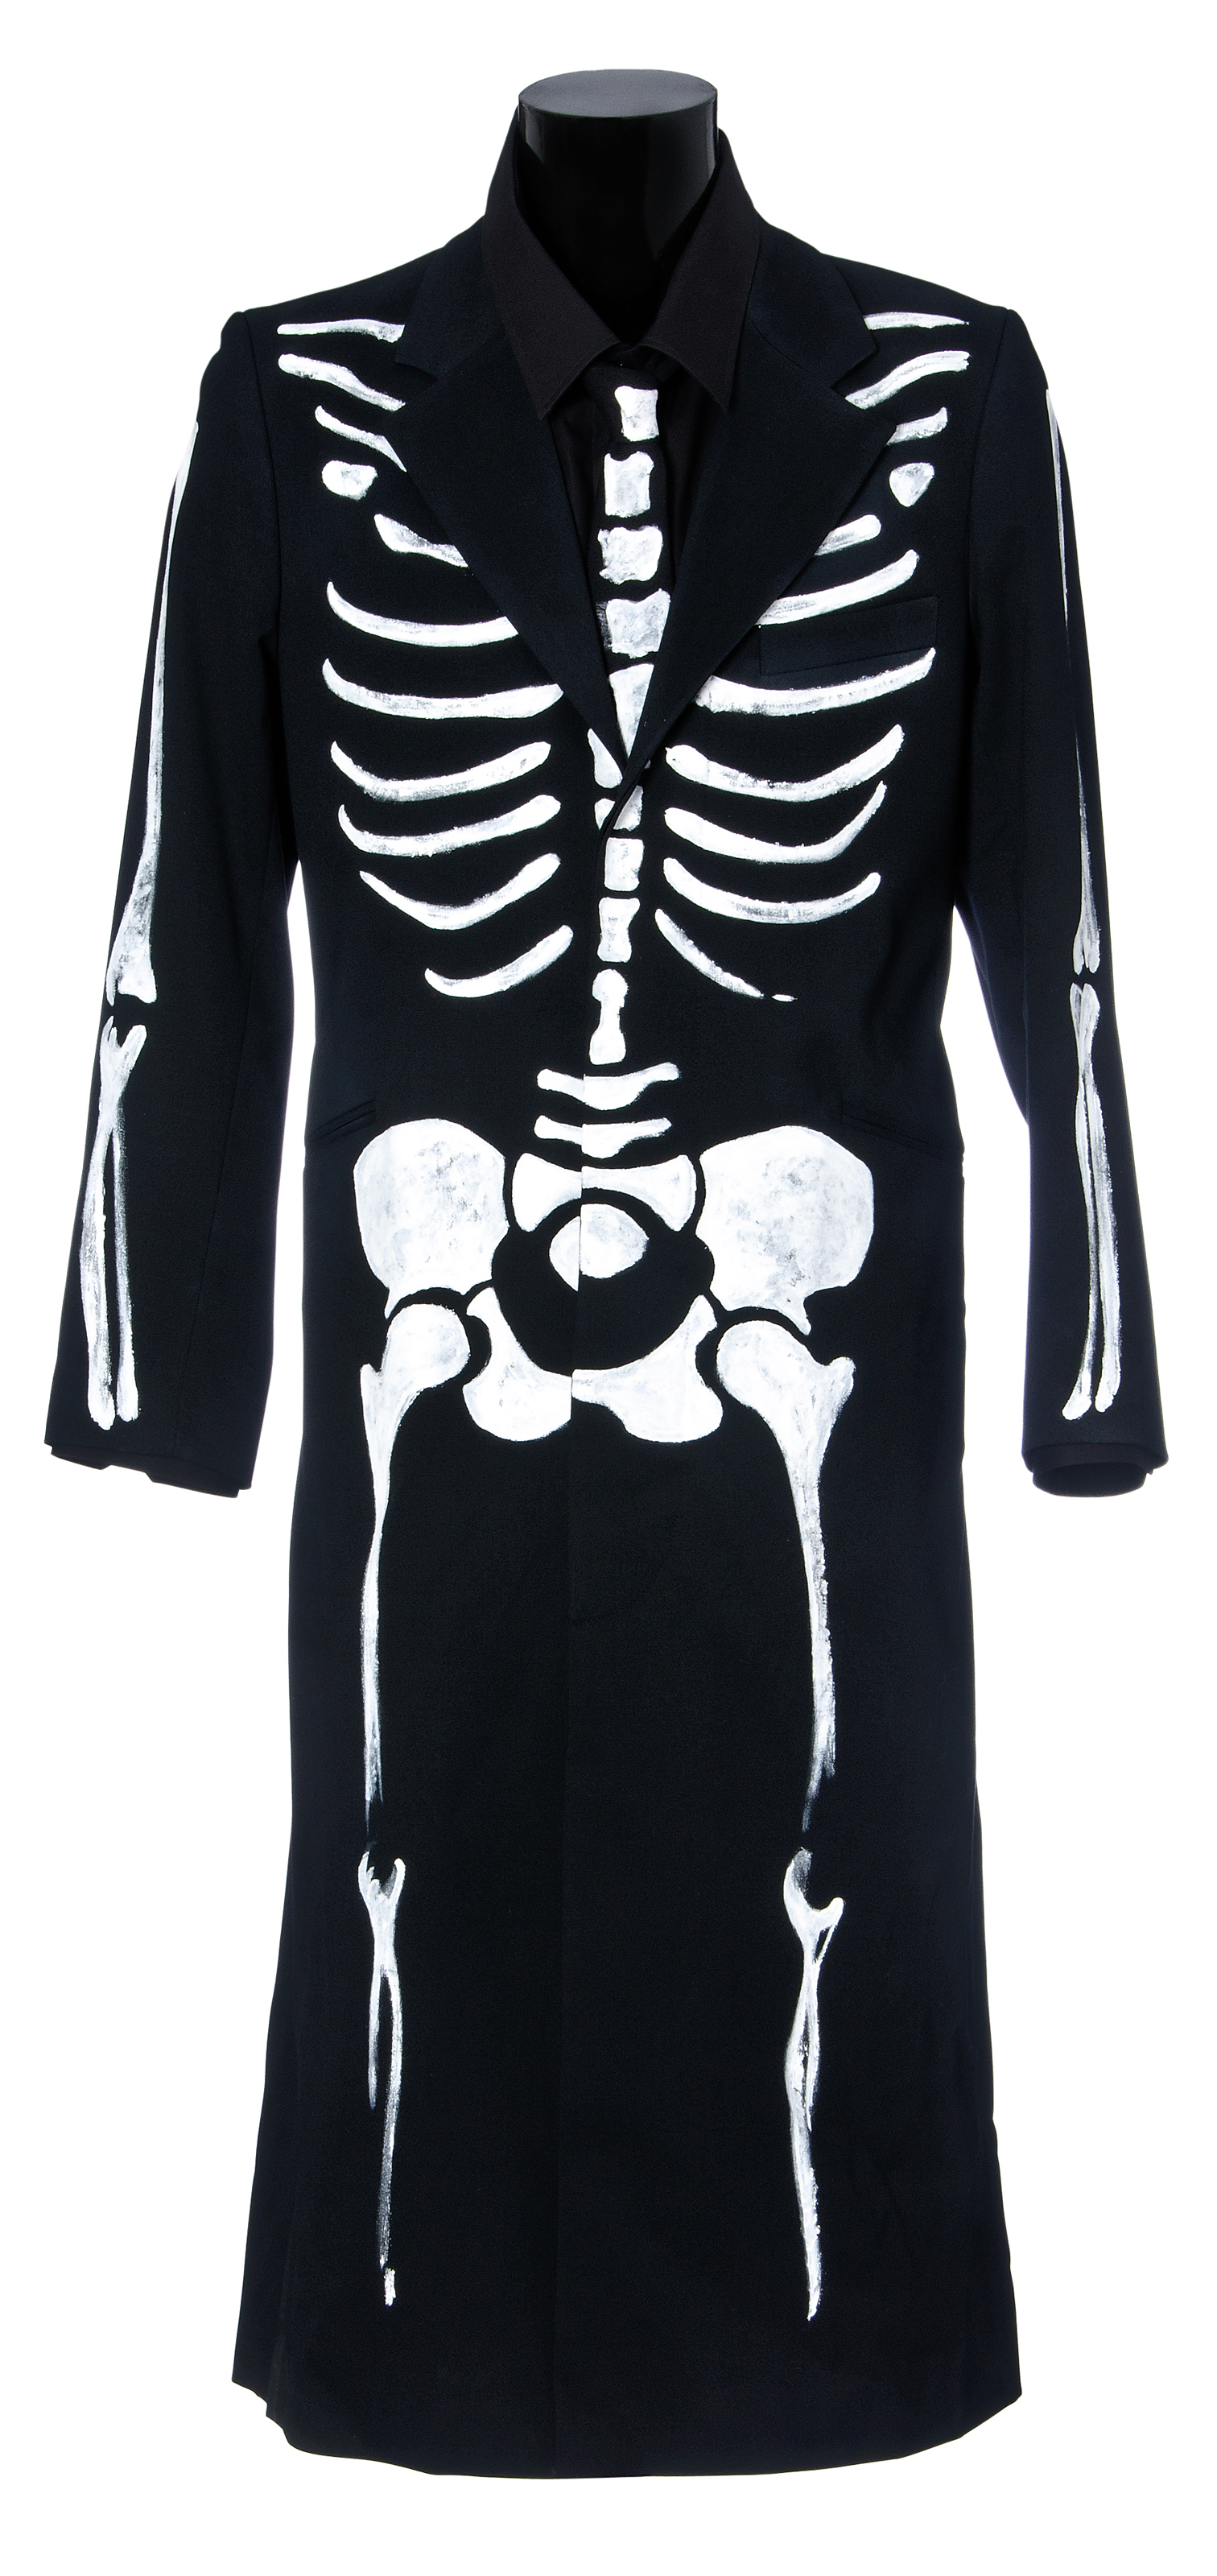 James Bond's Day of the Dead Costume worn by Daniel Craig